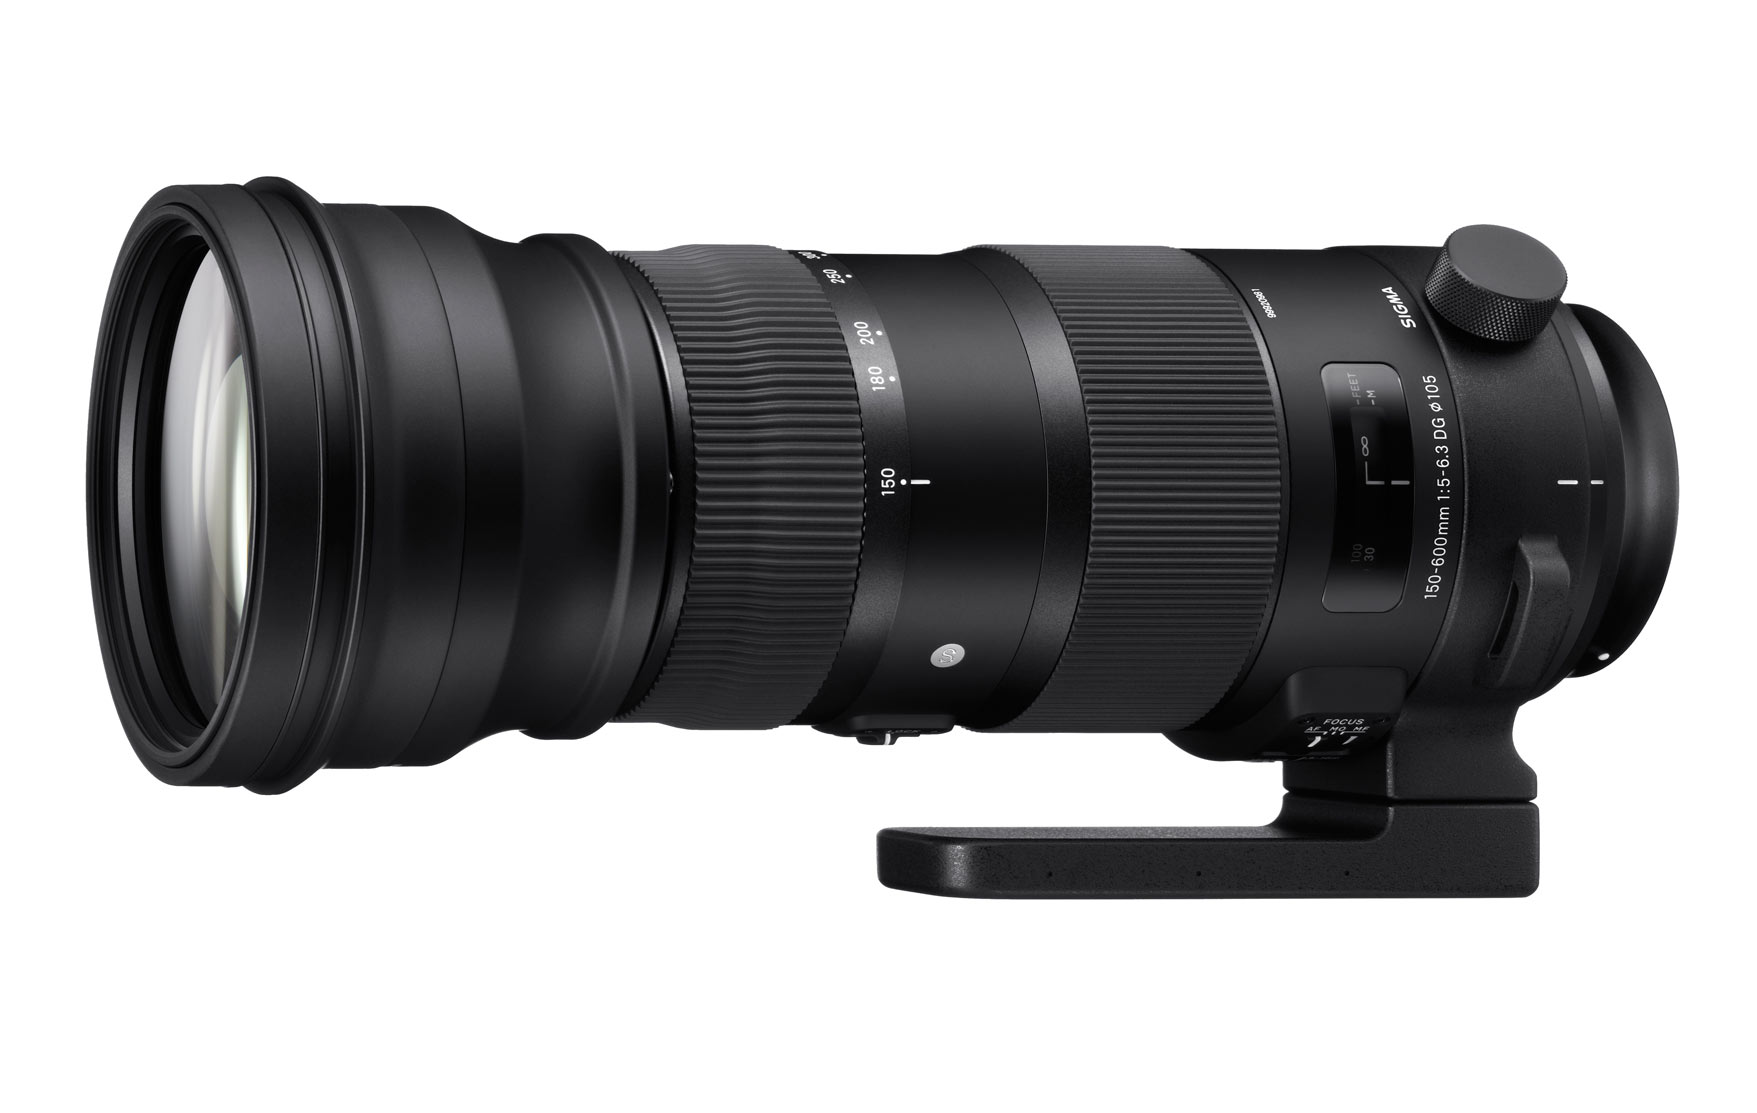 Sigma's 150-600mm F/5-6.3 DG OS HSM Sports supertelephoto zoom will go up against an affordable rival from Tamron and high-priced pro lenses from Canon, Nikon, and Sony.